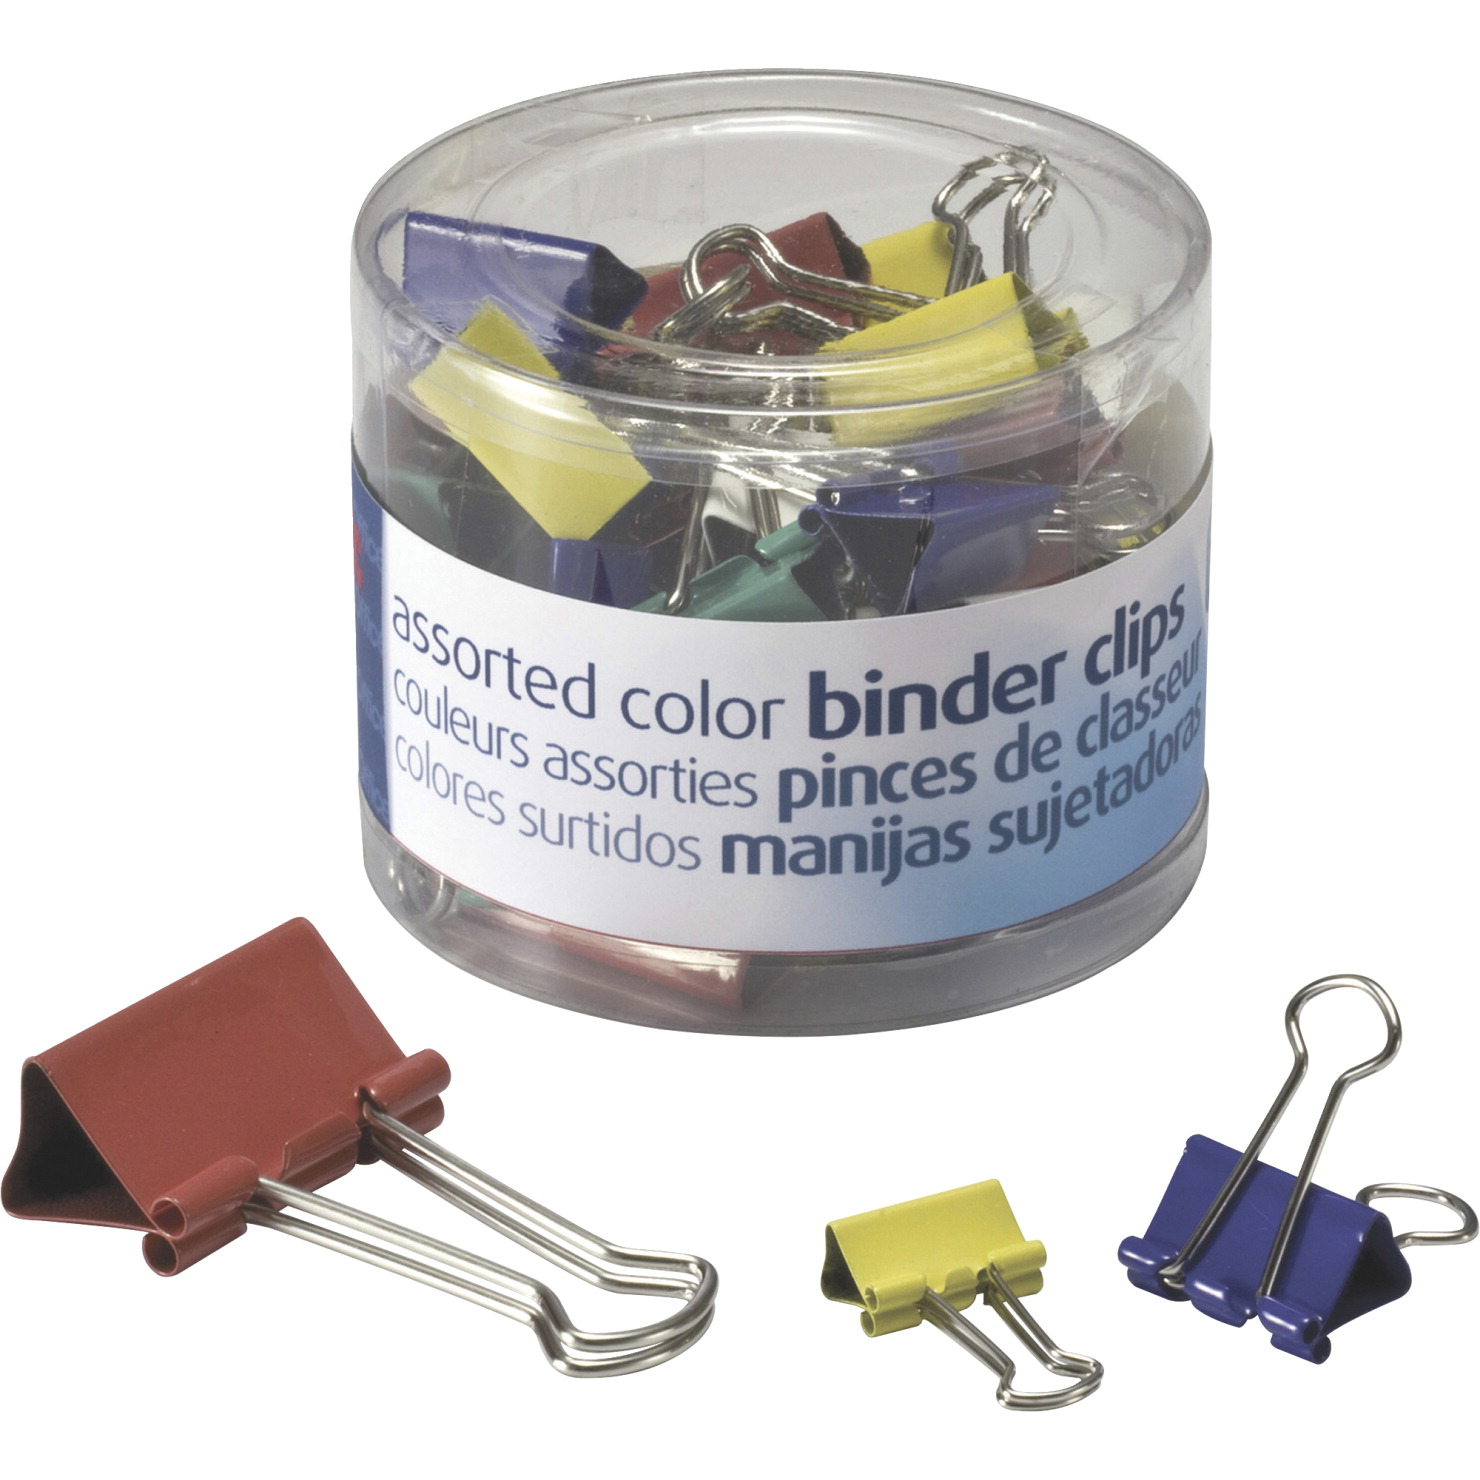 Officemate Binder Clip Assortment - Configurable Item, Assorted Size,  Metal, Assorted Color, Pack of 30